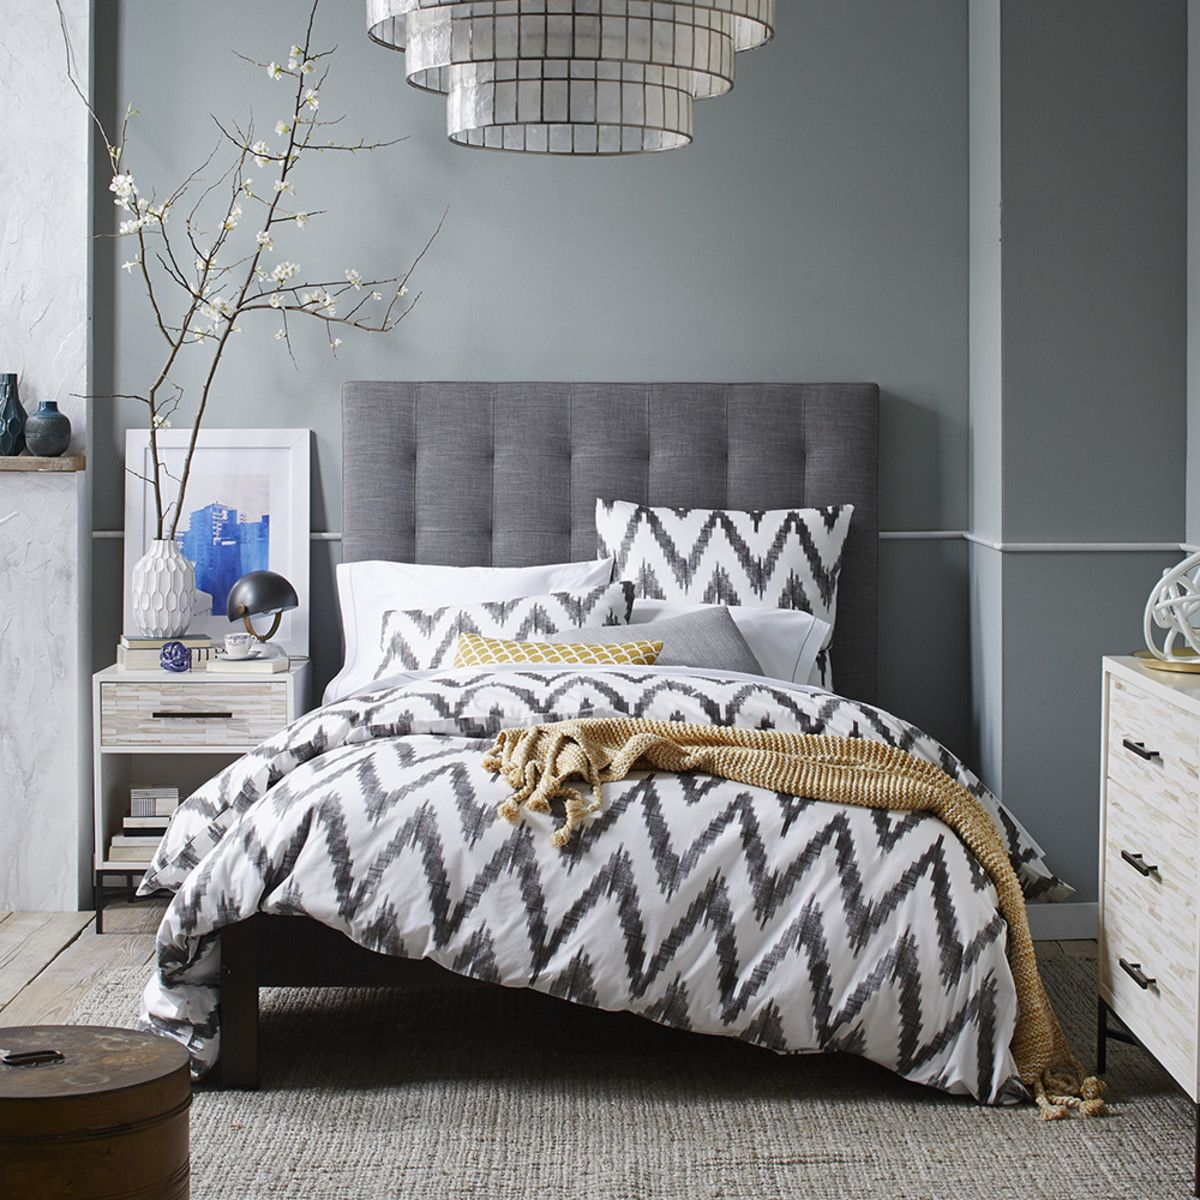 Tall Grid Tufted Headboard From West Elm. Is It Too High? Otherwise I  Adore. Home BedroomBedroom FurnitureDream ...